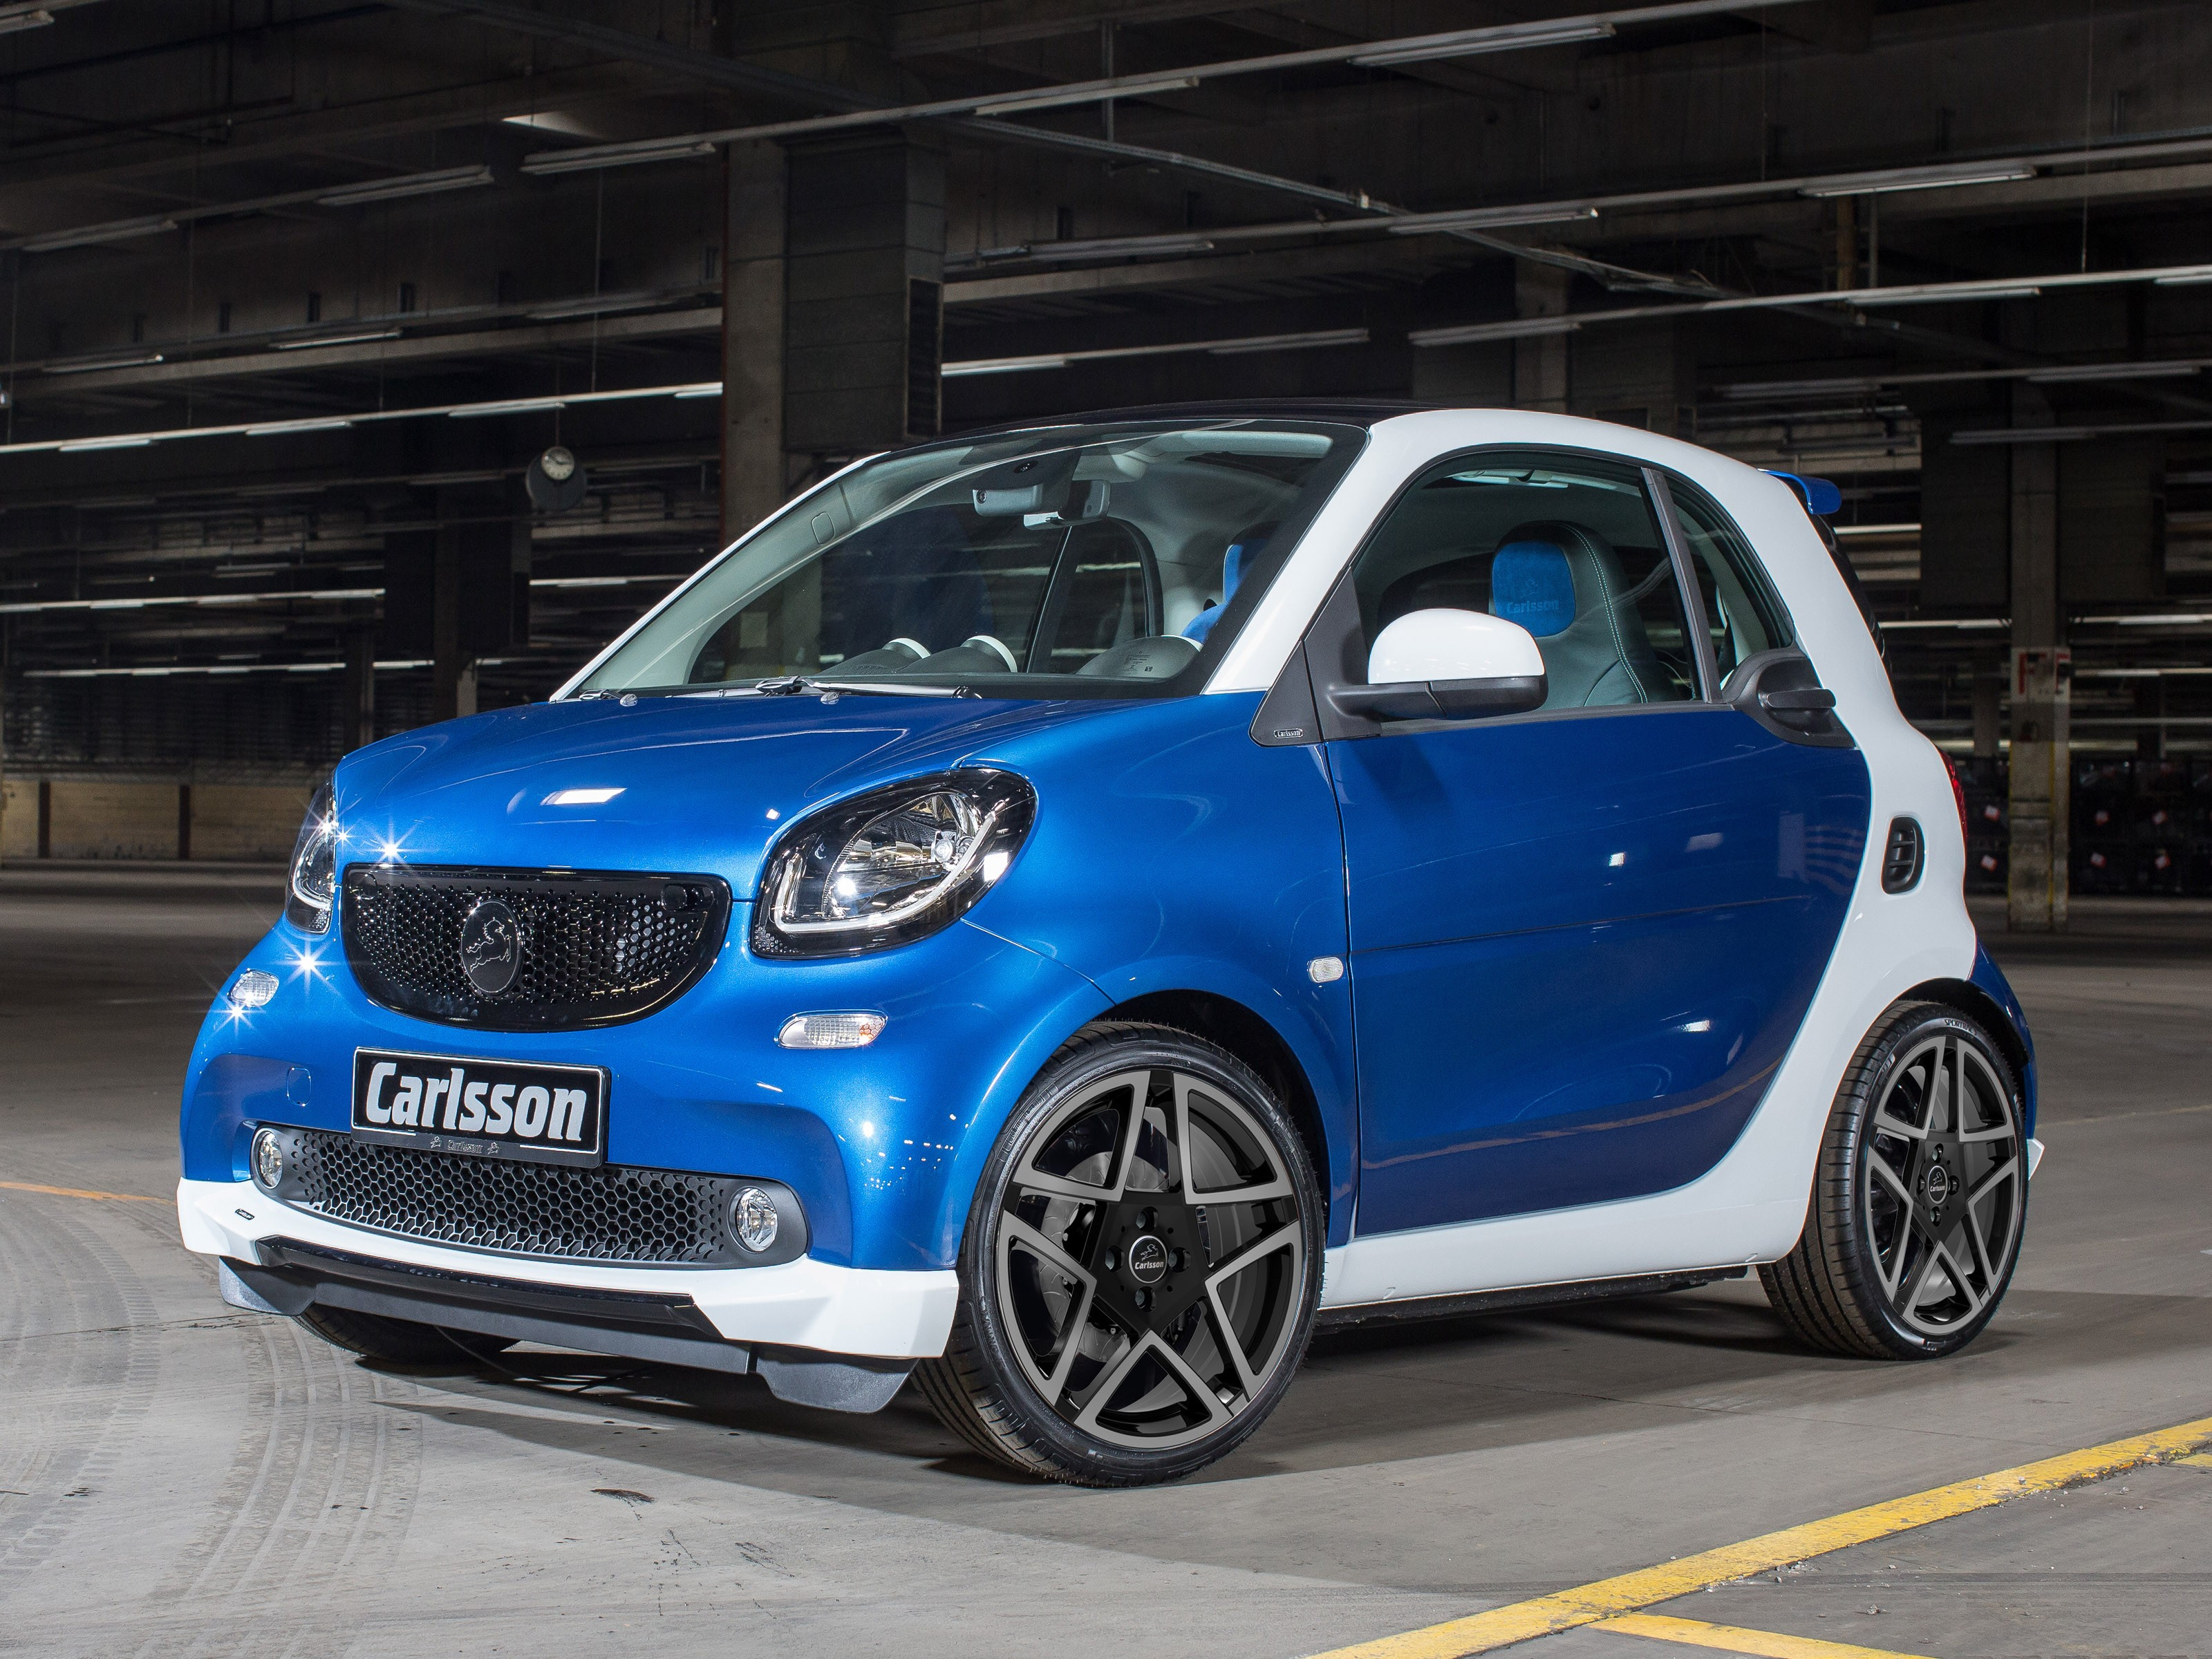 2015 Carlsson - Smart Fortwo CK10 C453